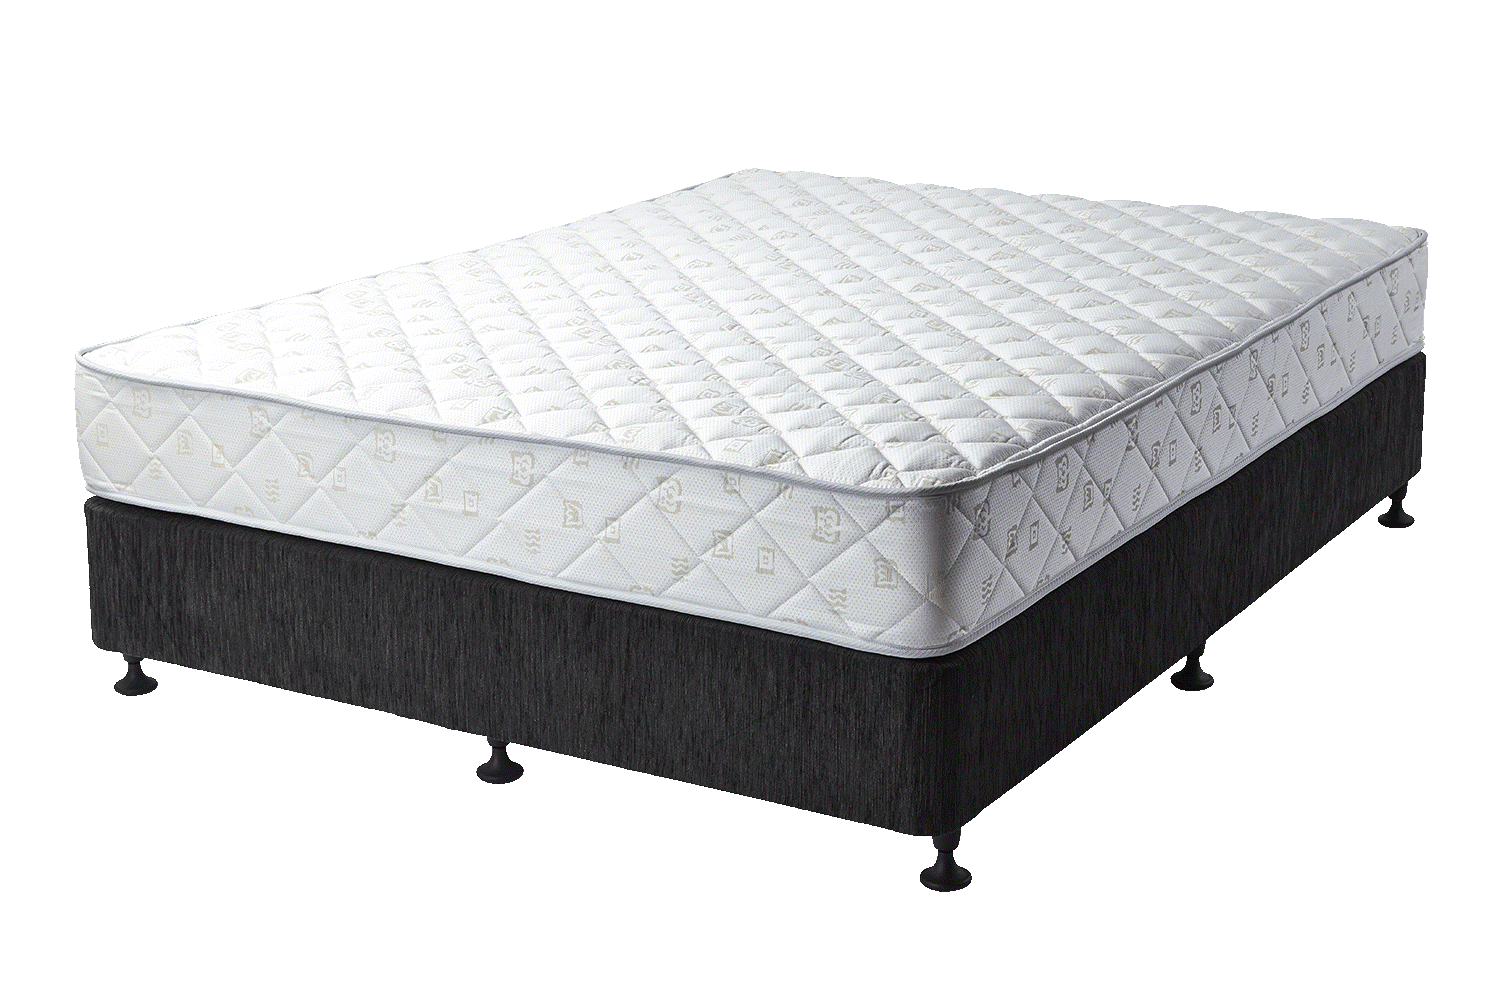 Size, Dimension, Comfort And More – Selecting The Best Mattress In Waterloo